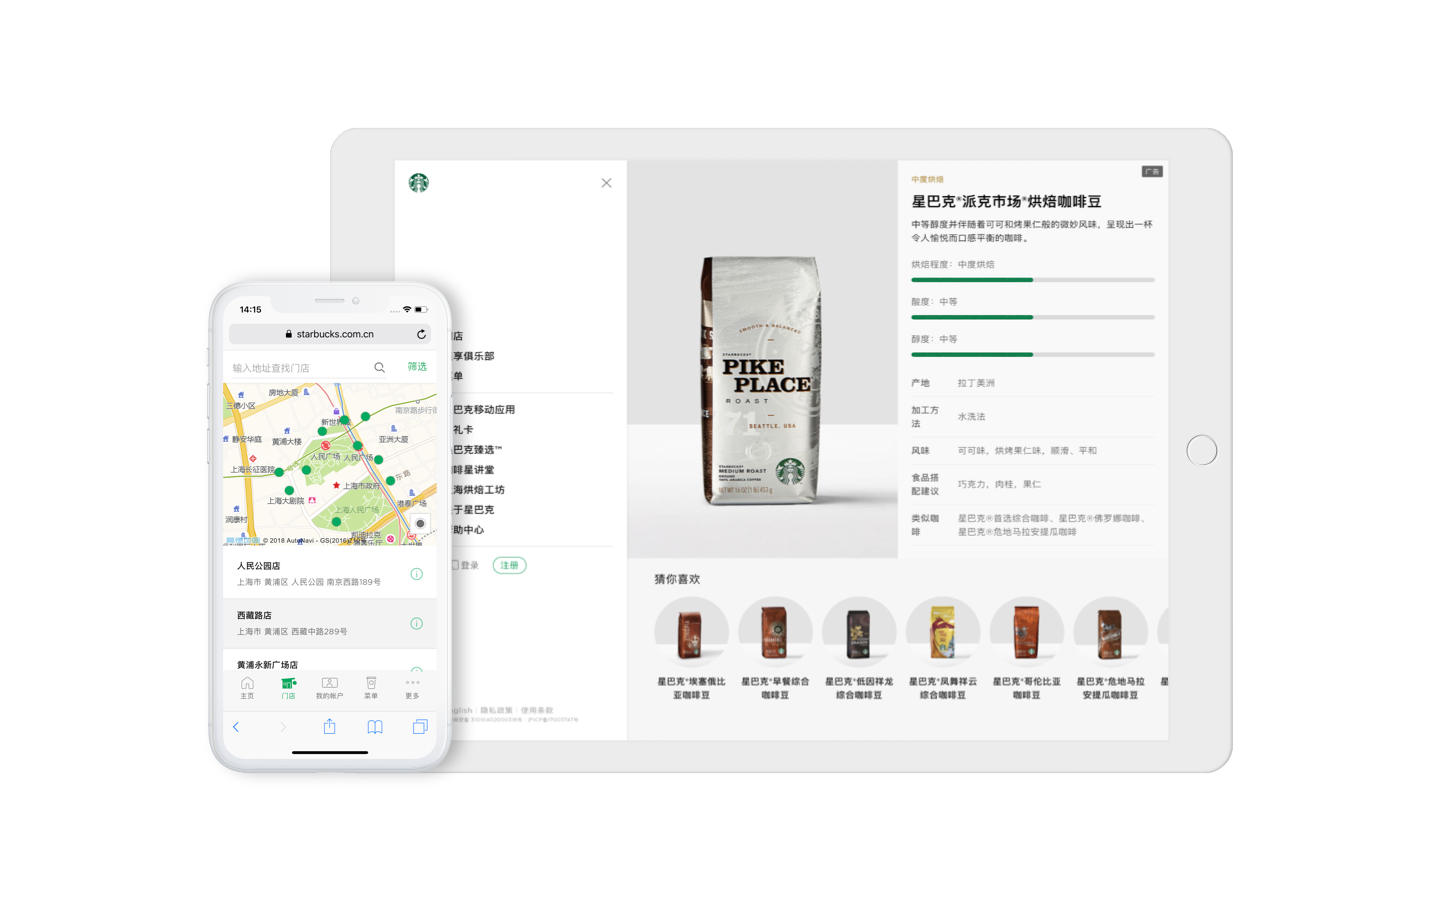 Mobile-First Starbucks Website